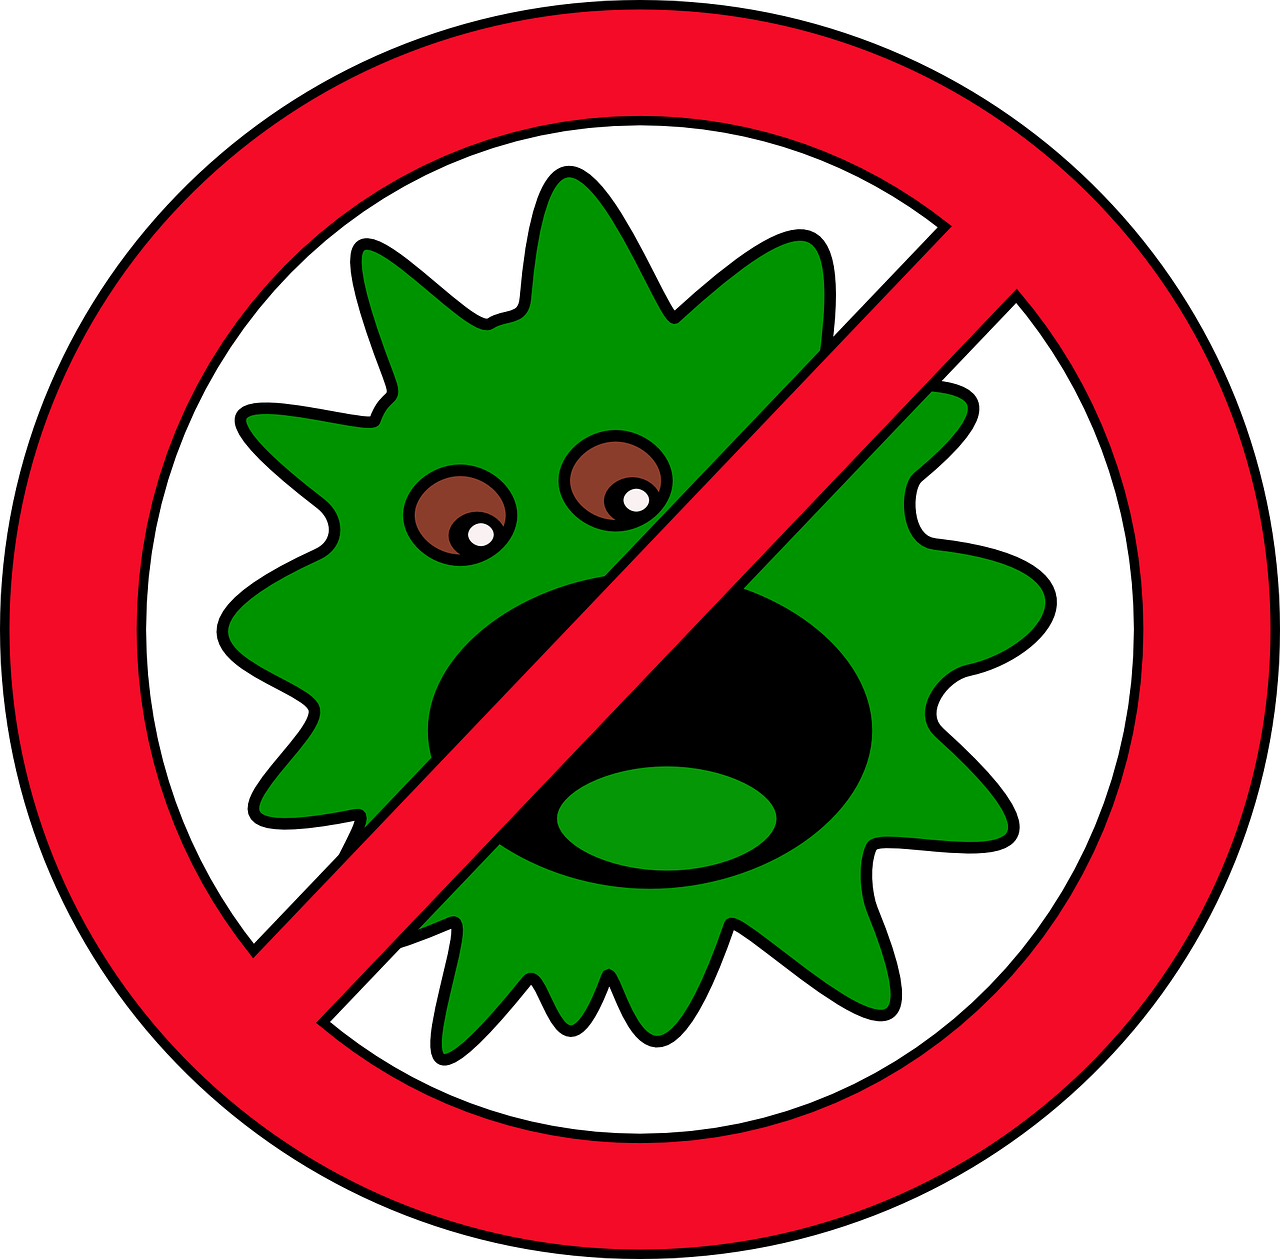 Germ,virus,bug,infection,health - free image from needpix.com